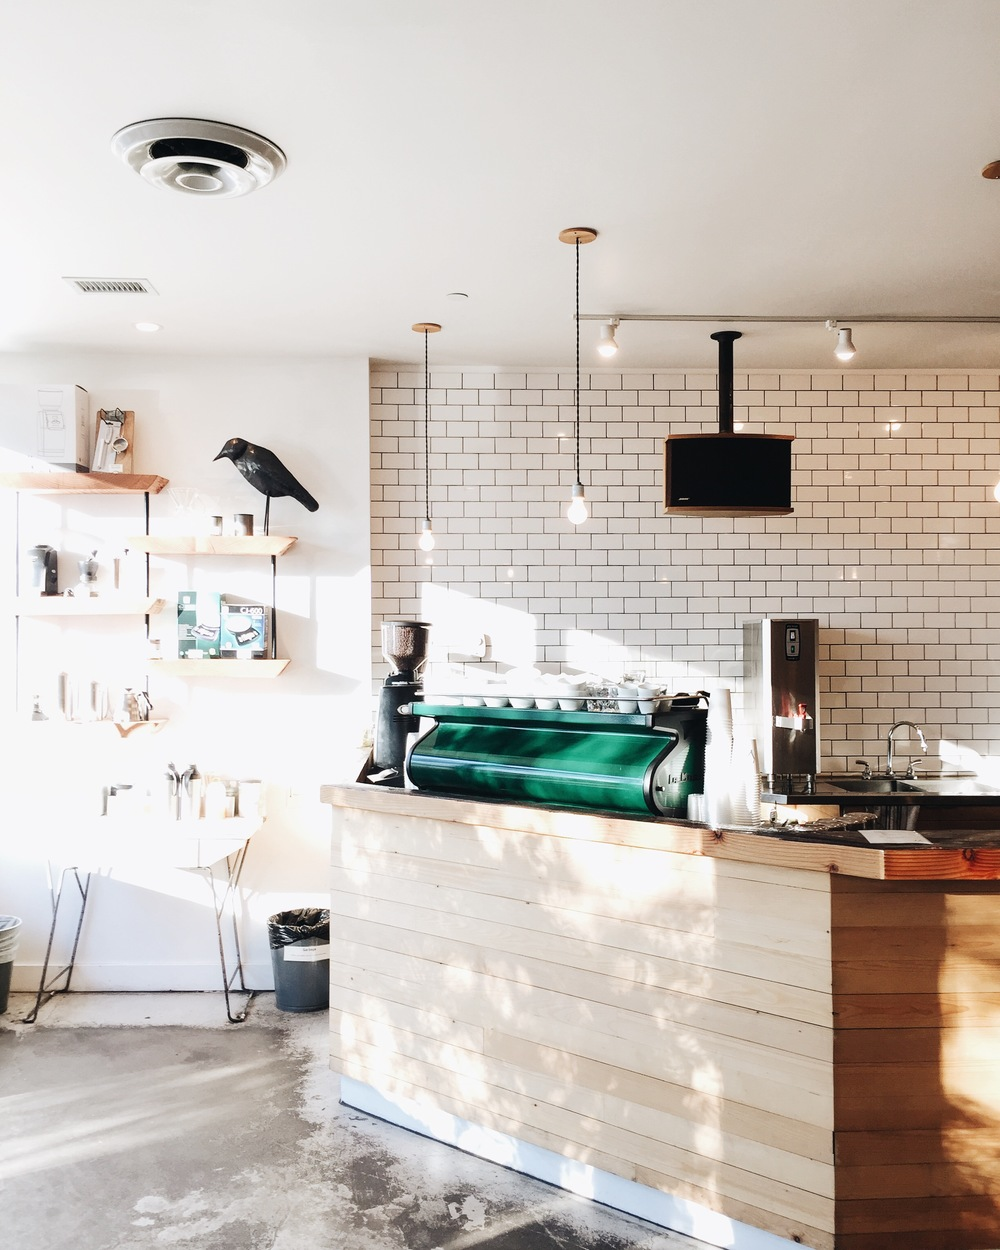 Matchstick Coffee Roasters